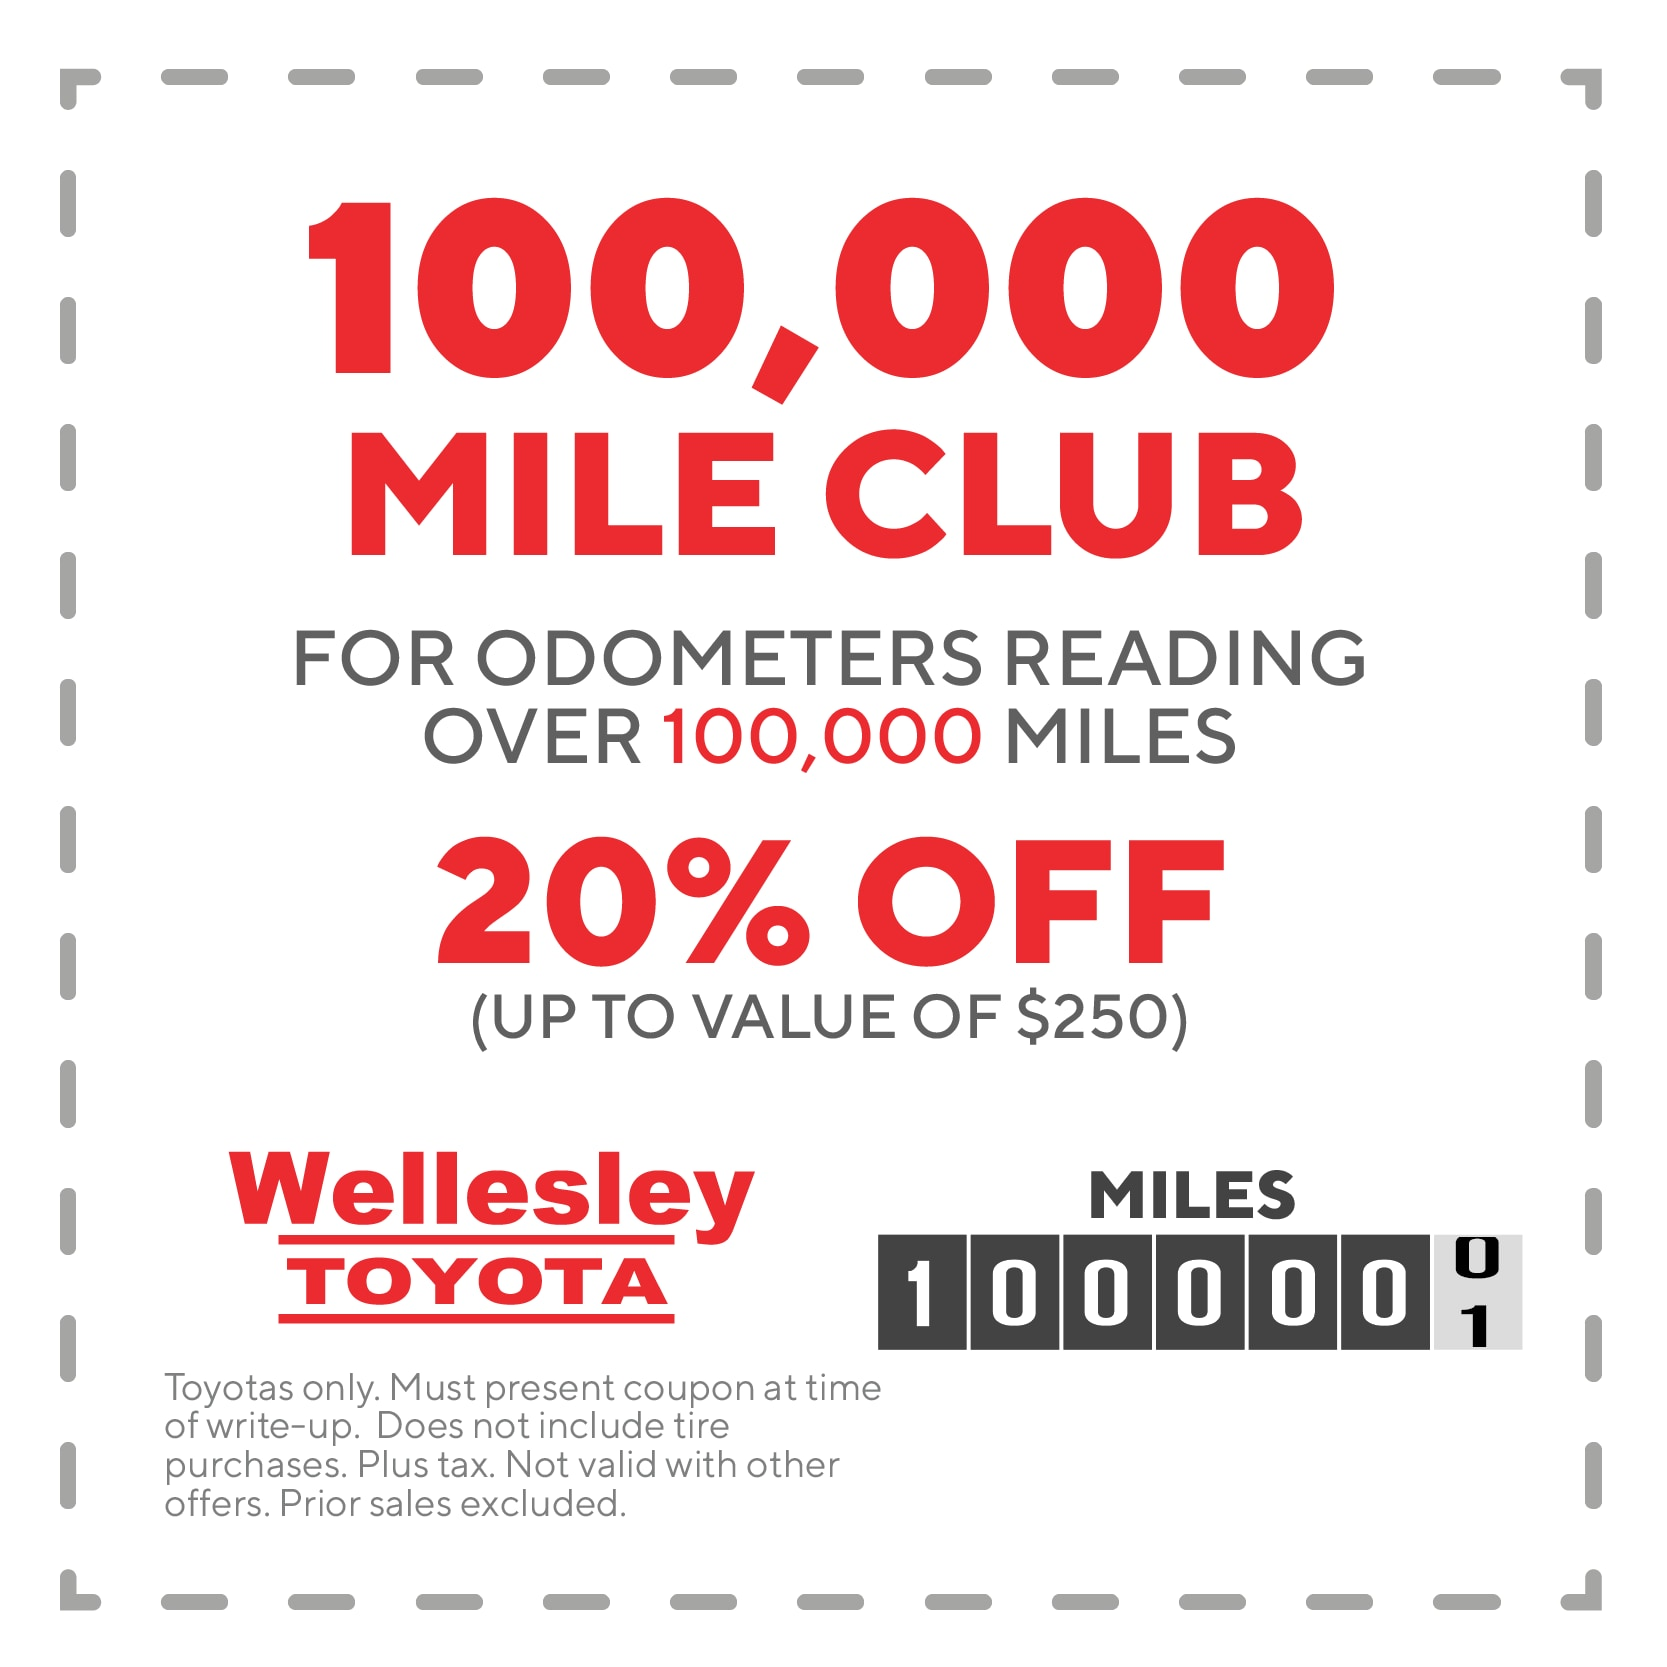 image regarding Toyota Service Coupons Printable known as MA Toyota Services Discount coupons Wellesley Toyota Company